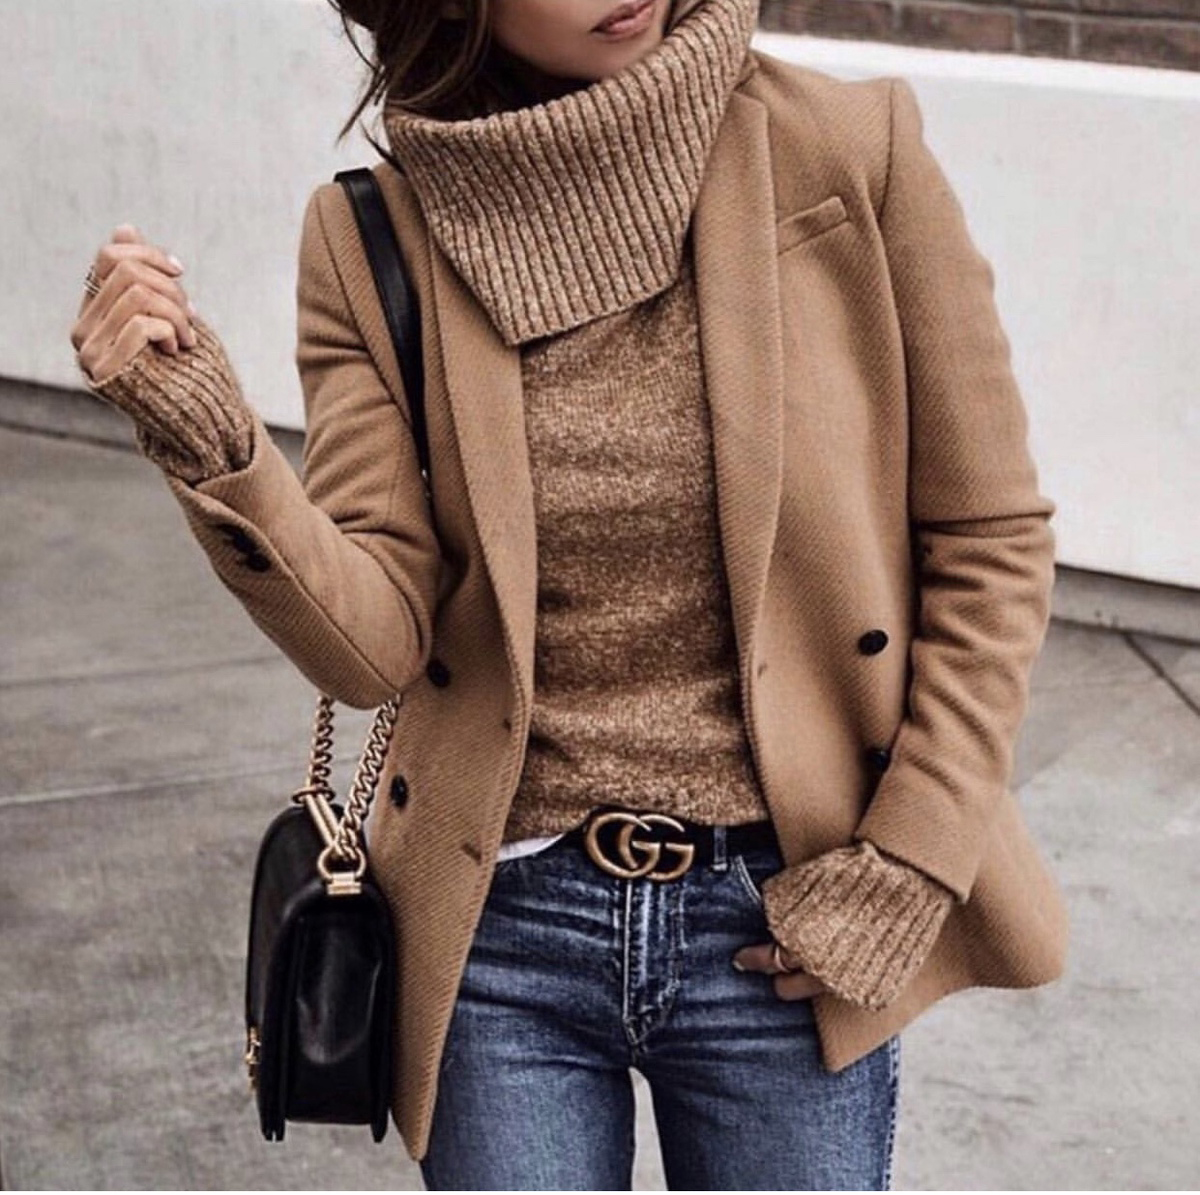 sweater styles, chic sweater styles, sweater styles of fall 2019, chunky turtleneck sweater, beige monochromatic outfit, fall outfit inspiration | lolario style